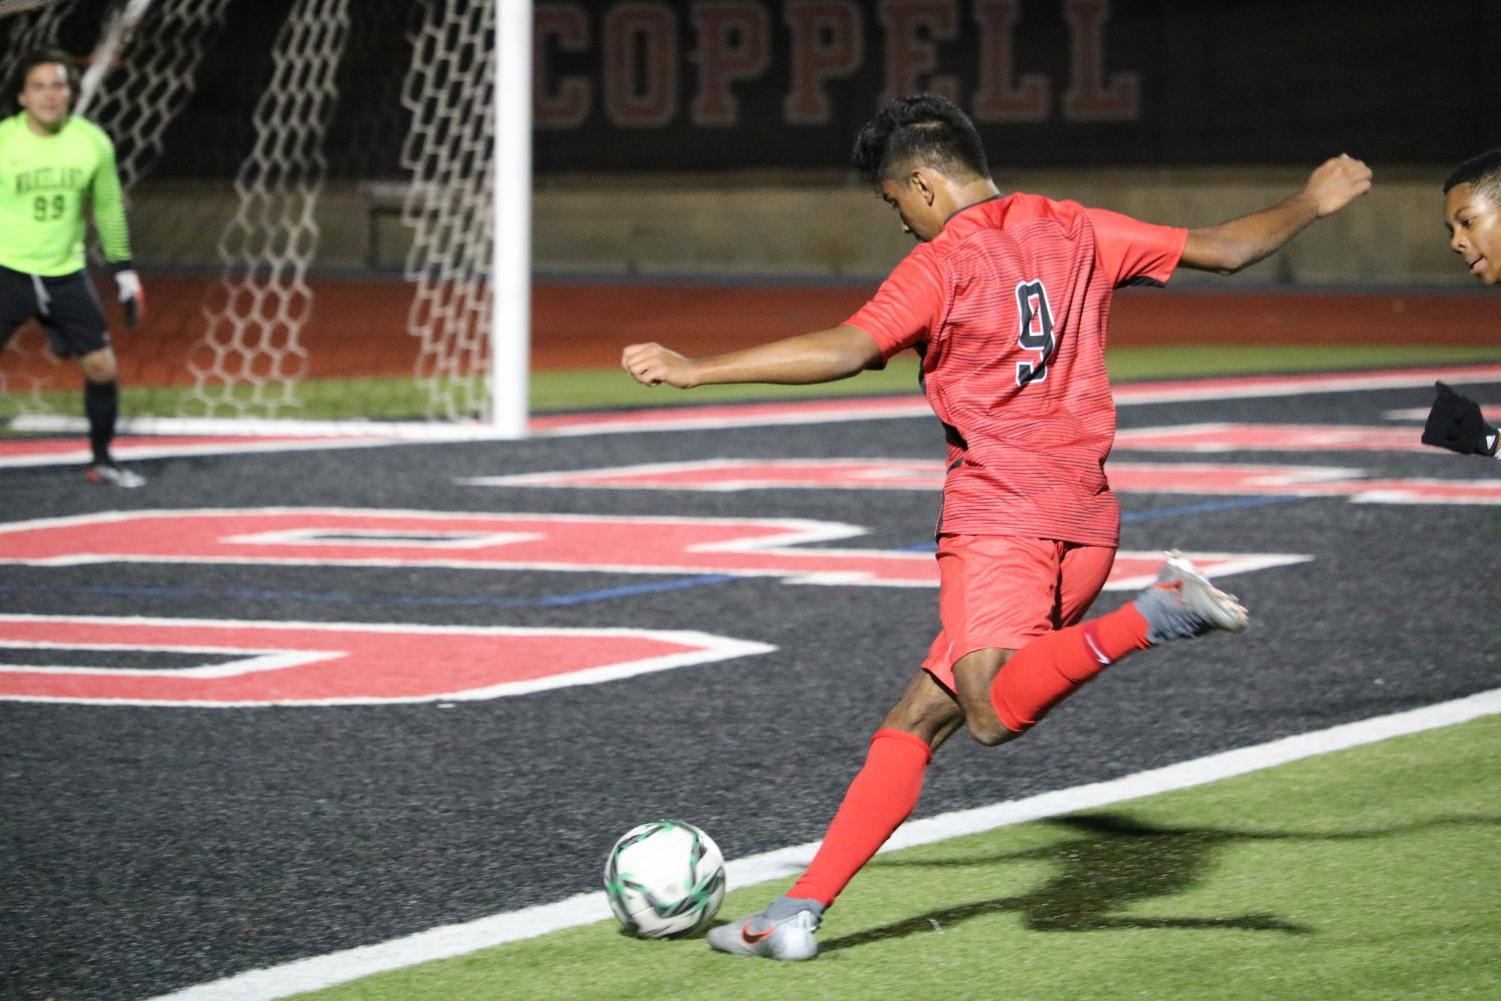 Coppell senior forward Tom Vazhekatt shoots during the scrimmage against Frisco Wakeland on Thursday at Buddy Echols Field. The Cowboys face Frisco Heritage in a scrimmage tomorrow at 7:30 p.m. at Buddy Echols Field.